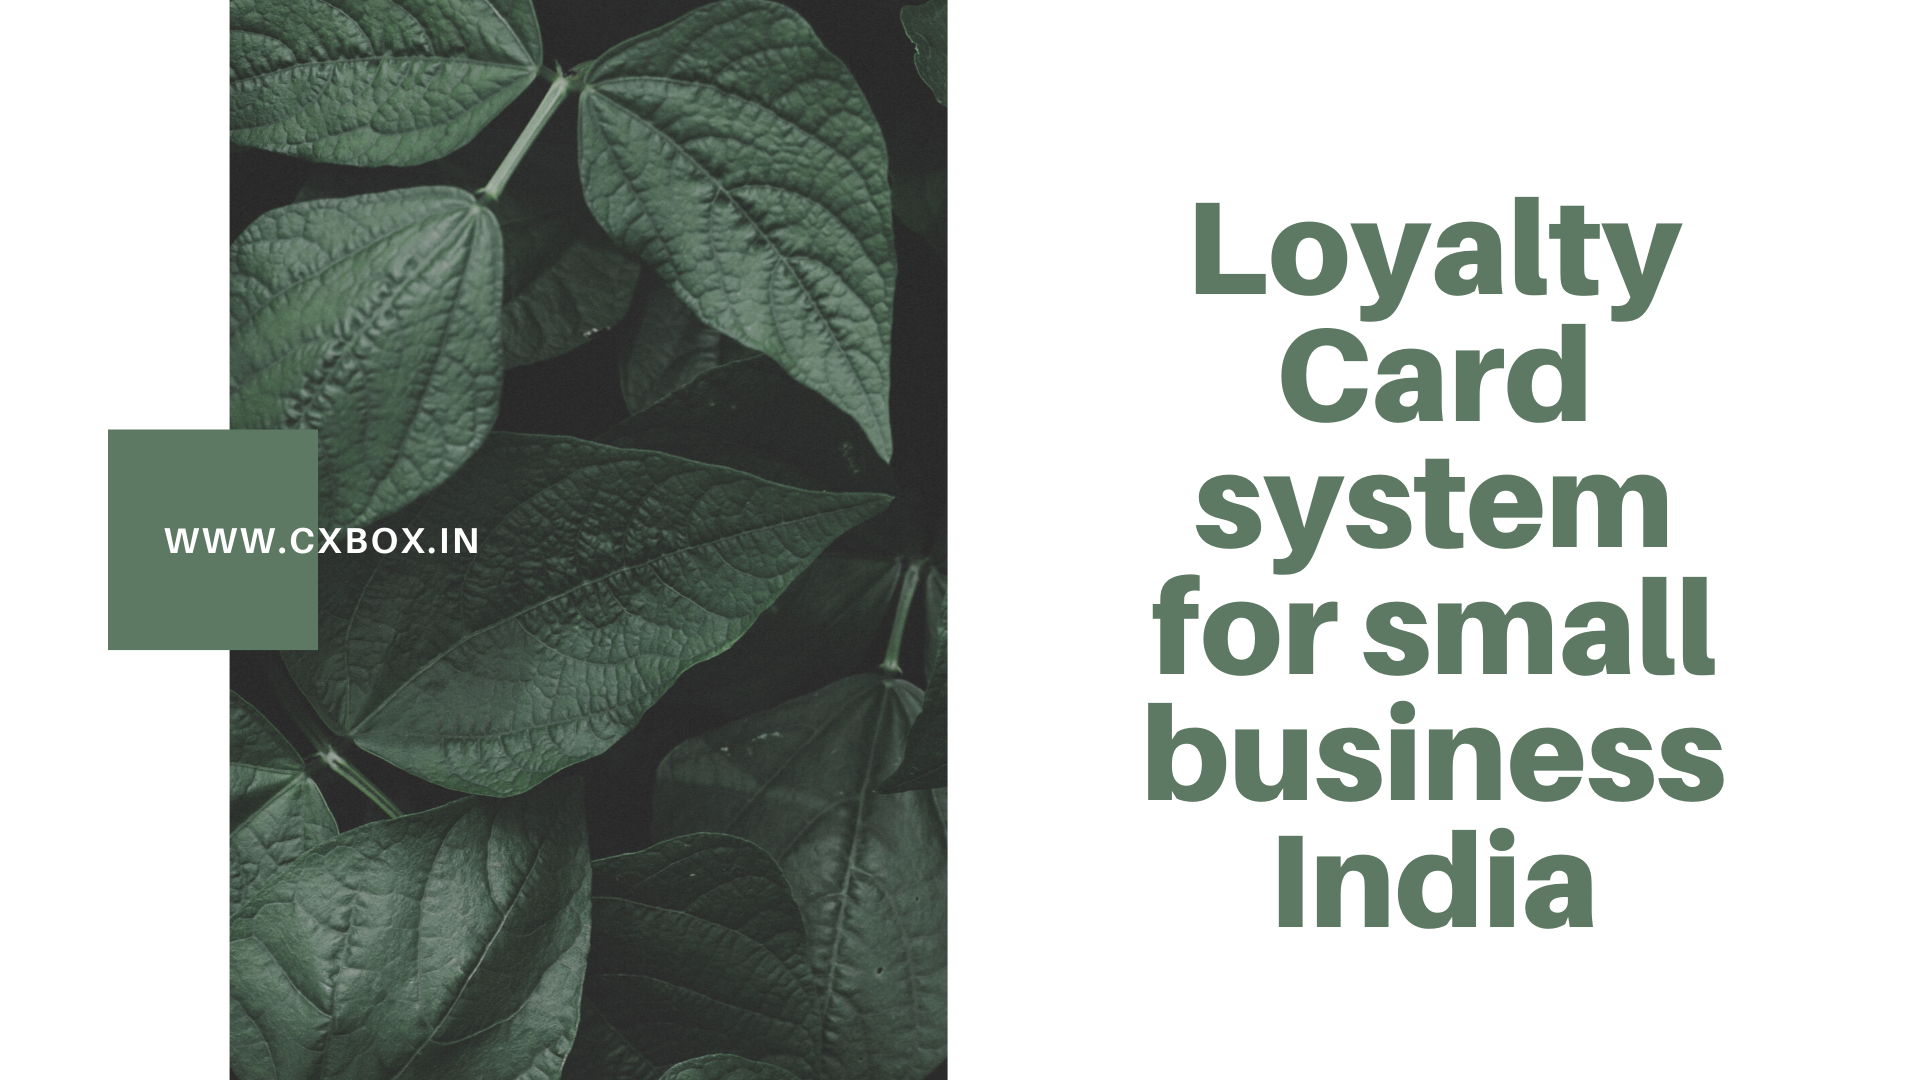 Loyalty Card system for small business India